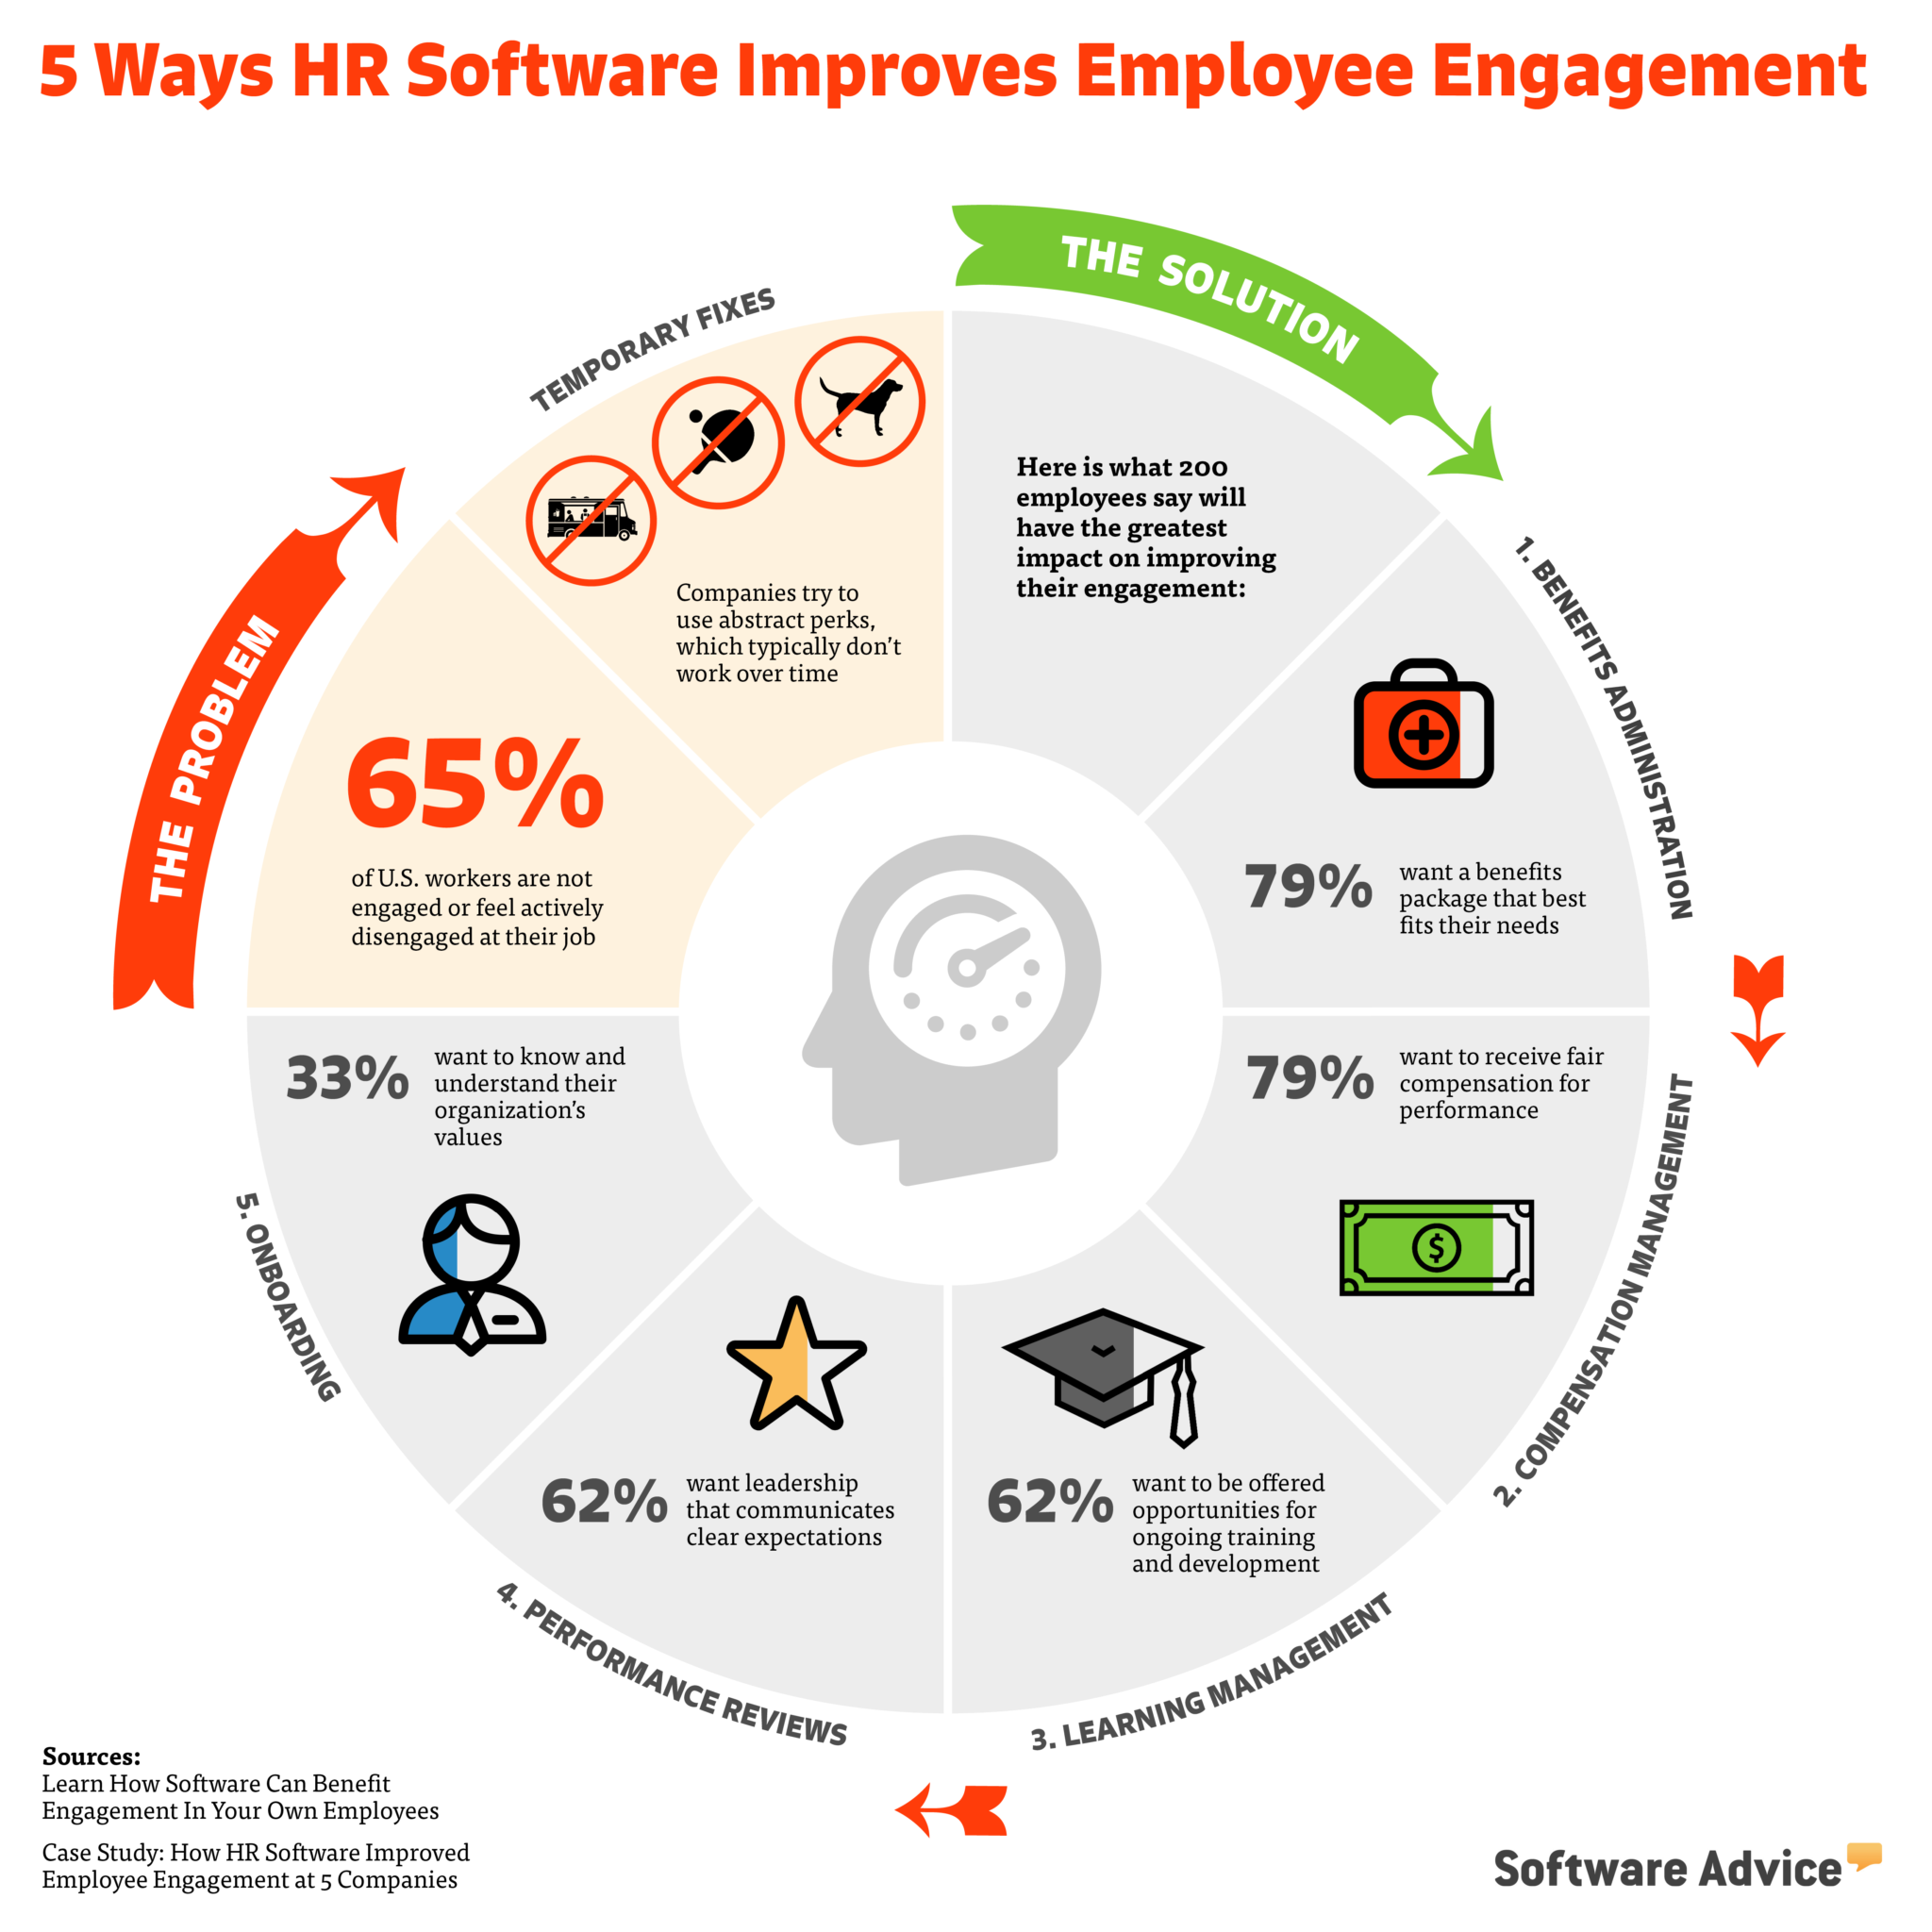 Hr employee engagement cakehr blog 5 ways hr software can improve employee engagement infographic hr software hrtech ccuart